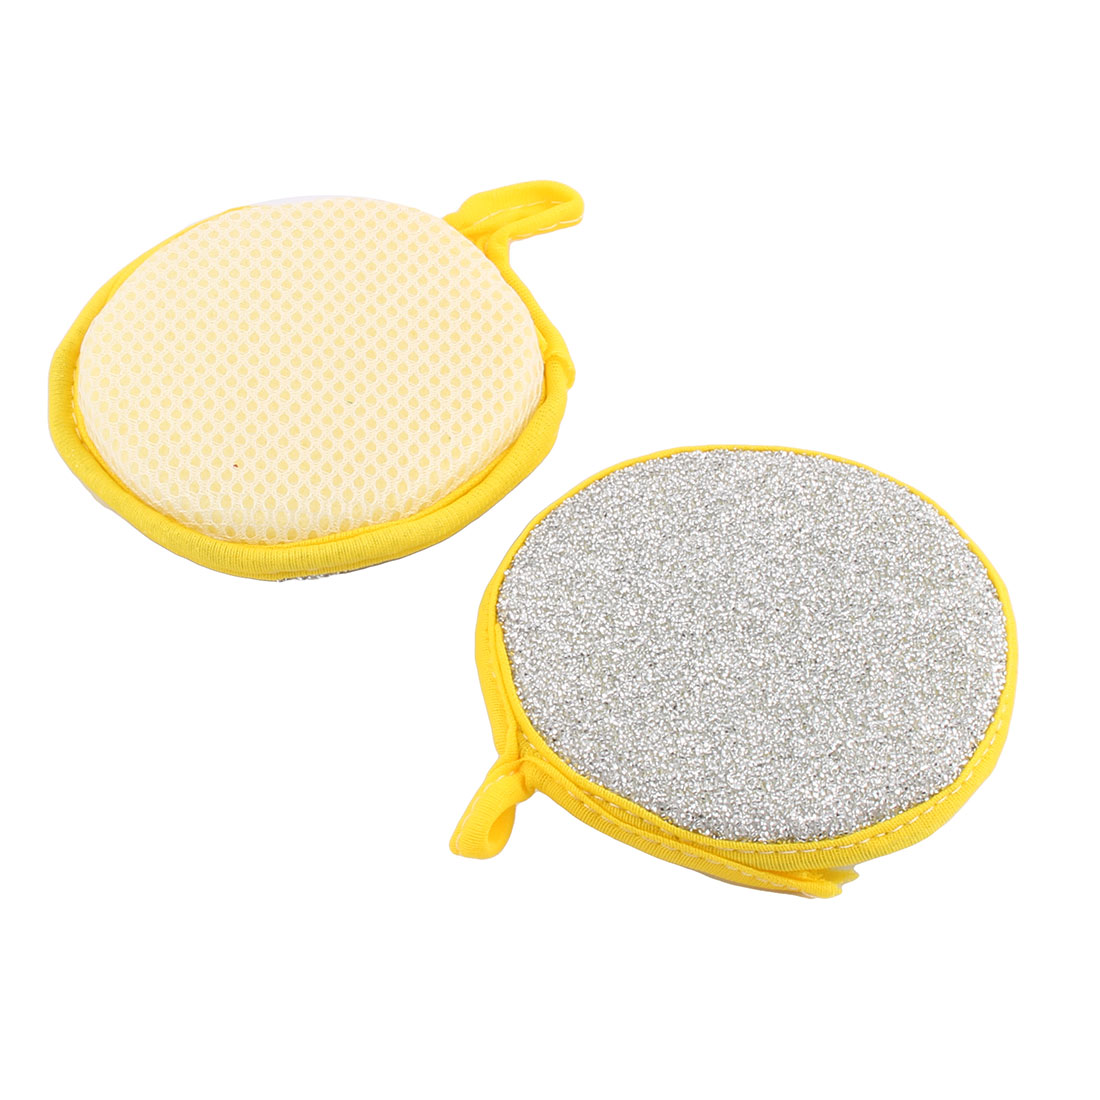 Household Kitchen Round Shape Dish Cloth Cleaning Tool Scrubber Silver Tone 2 Pcs